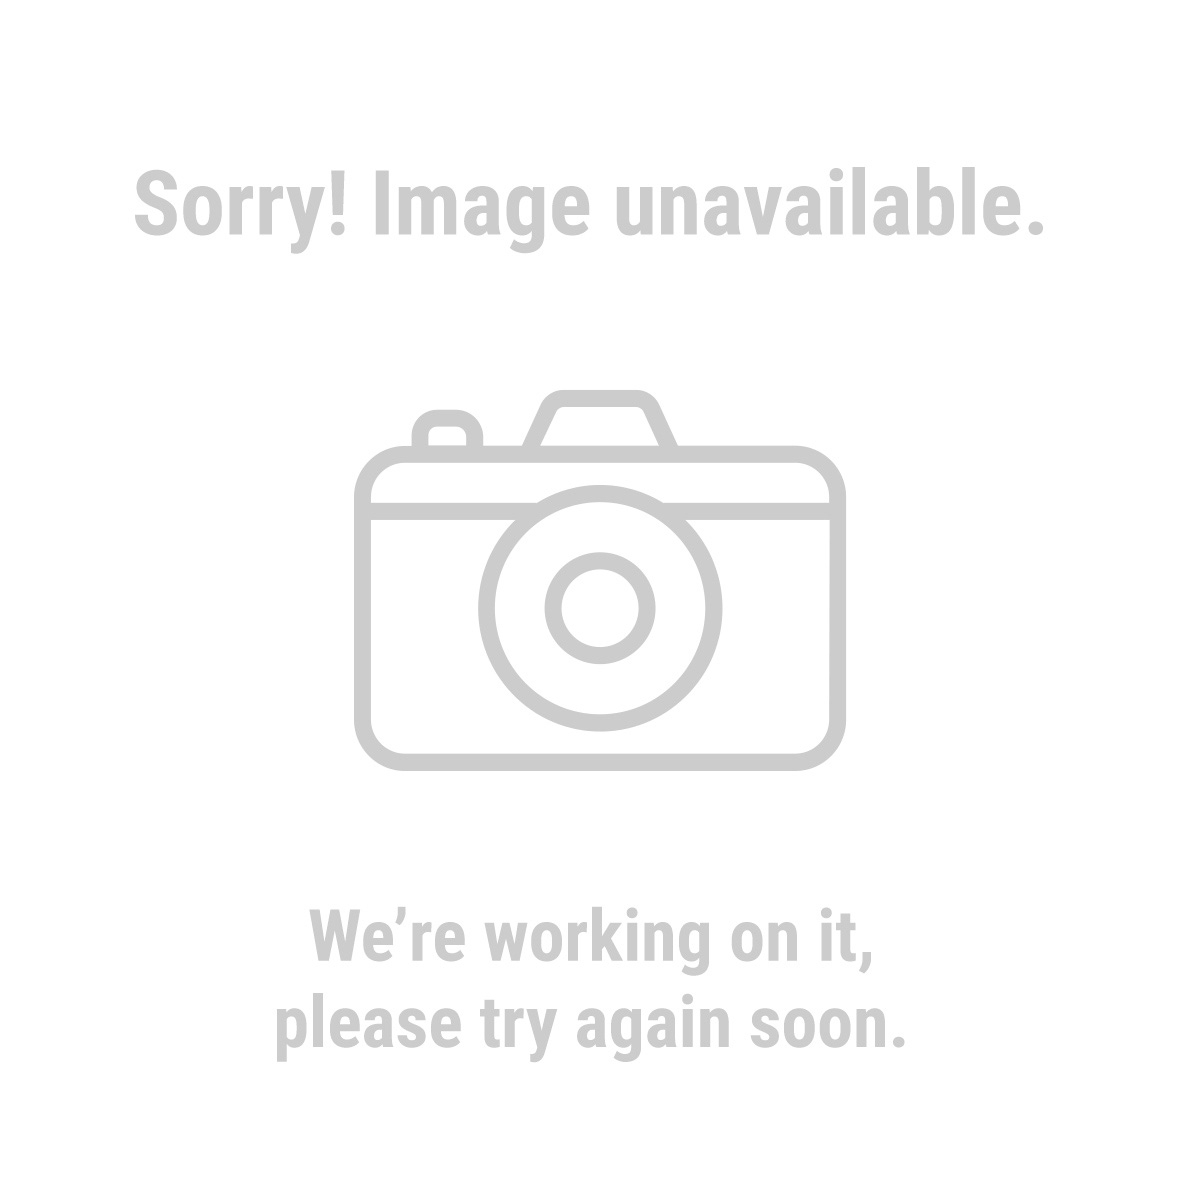 Central Forge 5798 2000 Lb. Capacity Geared Winch